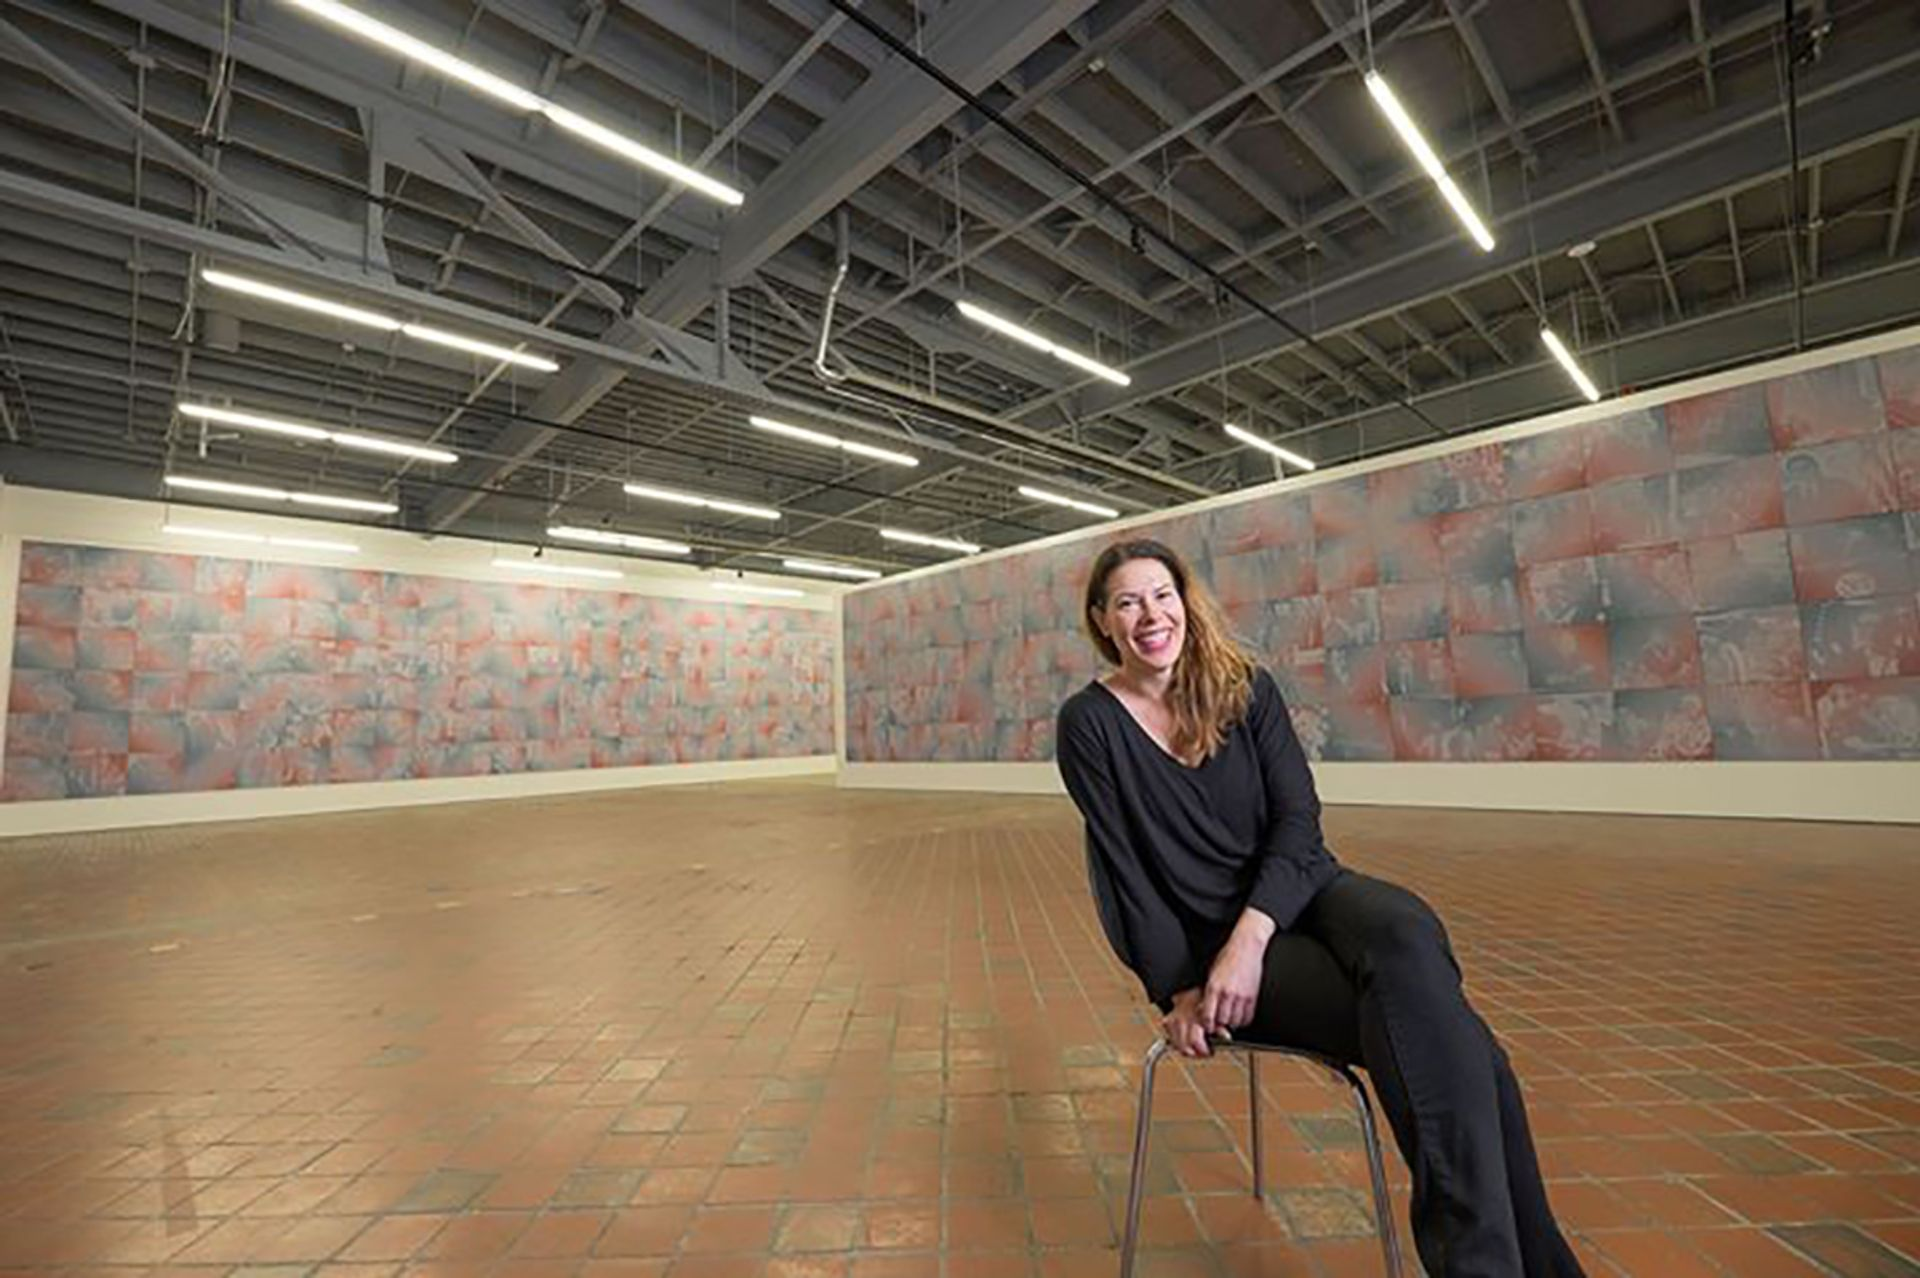 Elysia Borowy-Reeder, who has been dismissed as executive director of the Museum of Contemporary Art Detroit Courtesy of the Museum of Contemporary Art Detroit